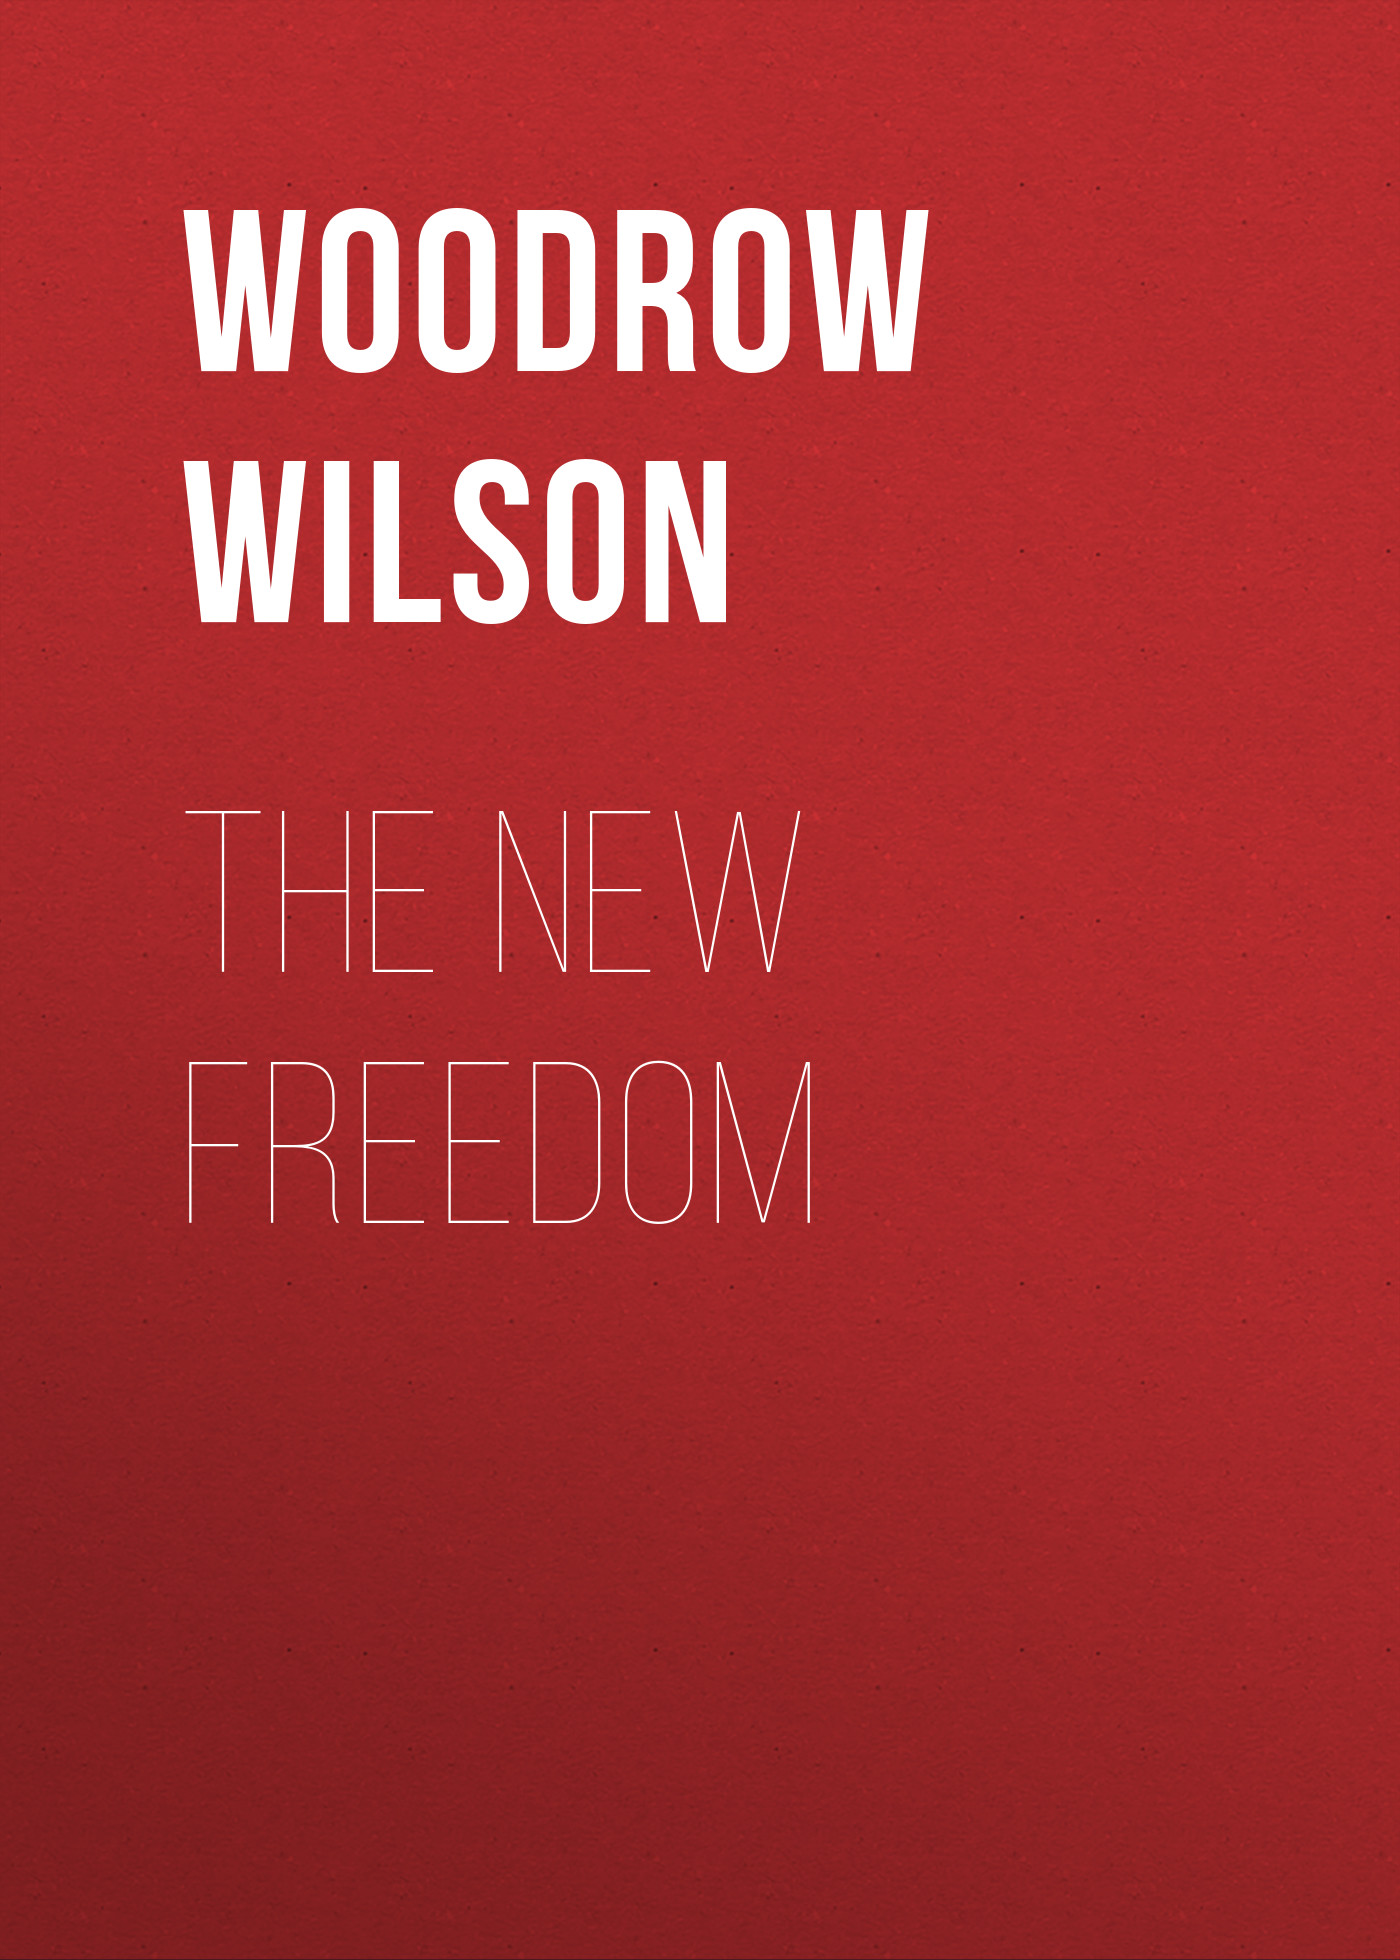 Woodrow Wilson The New Freedom woodrow wilson divison and reunion 1829 1889